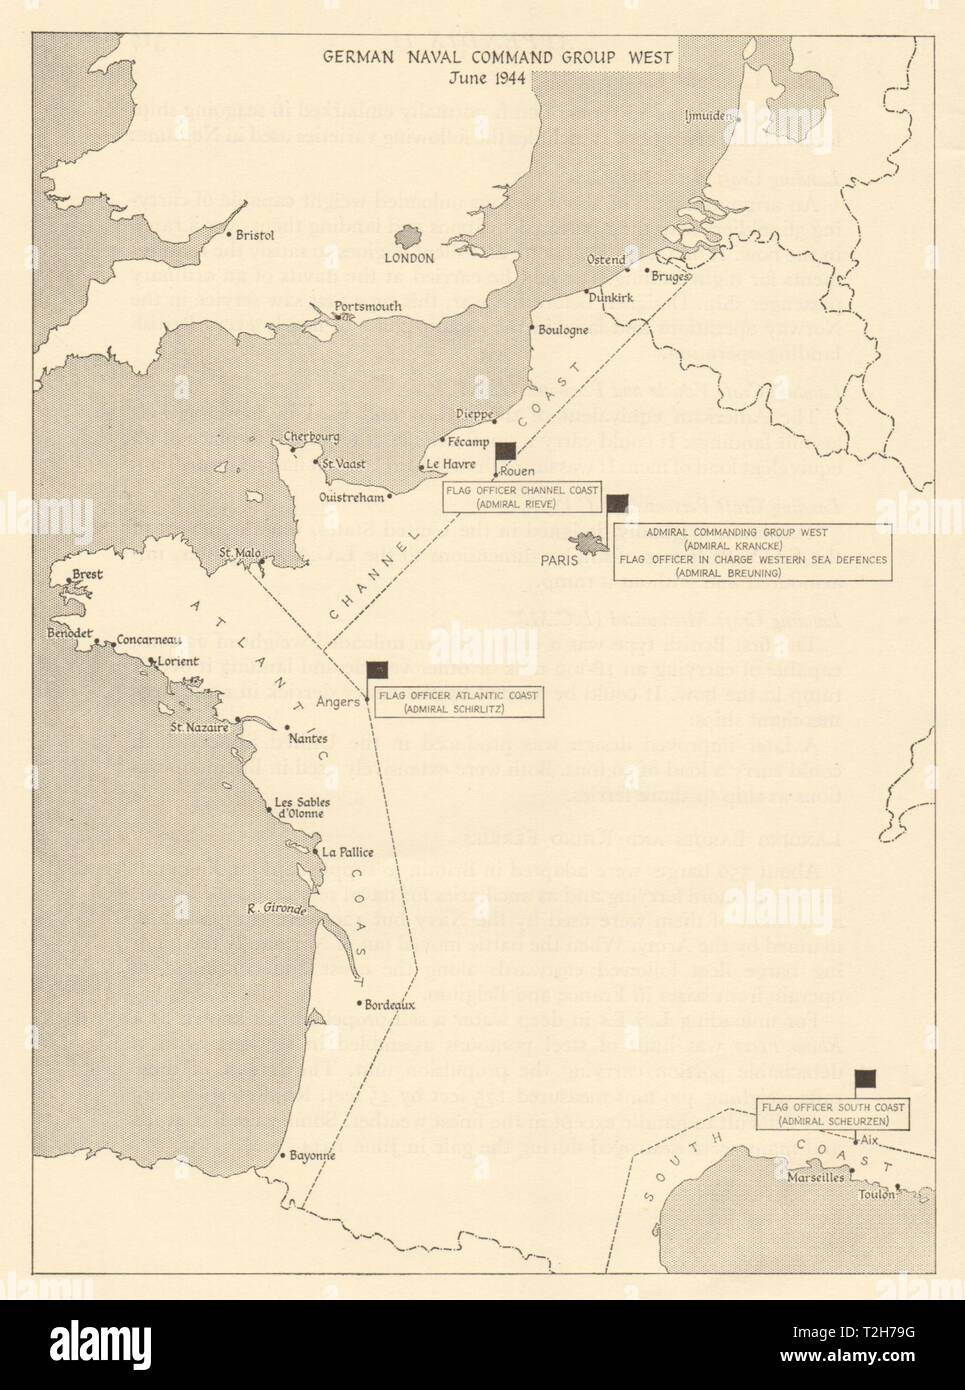 Map Of West France.German Naval Command Group West June 1944 France Operation